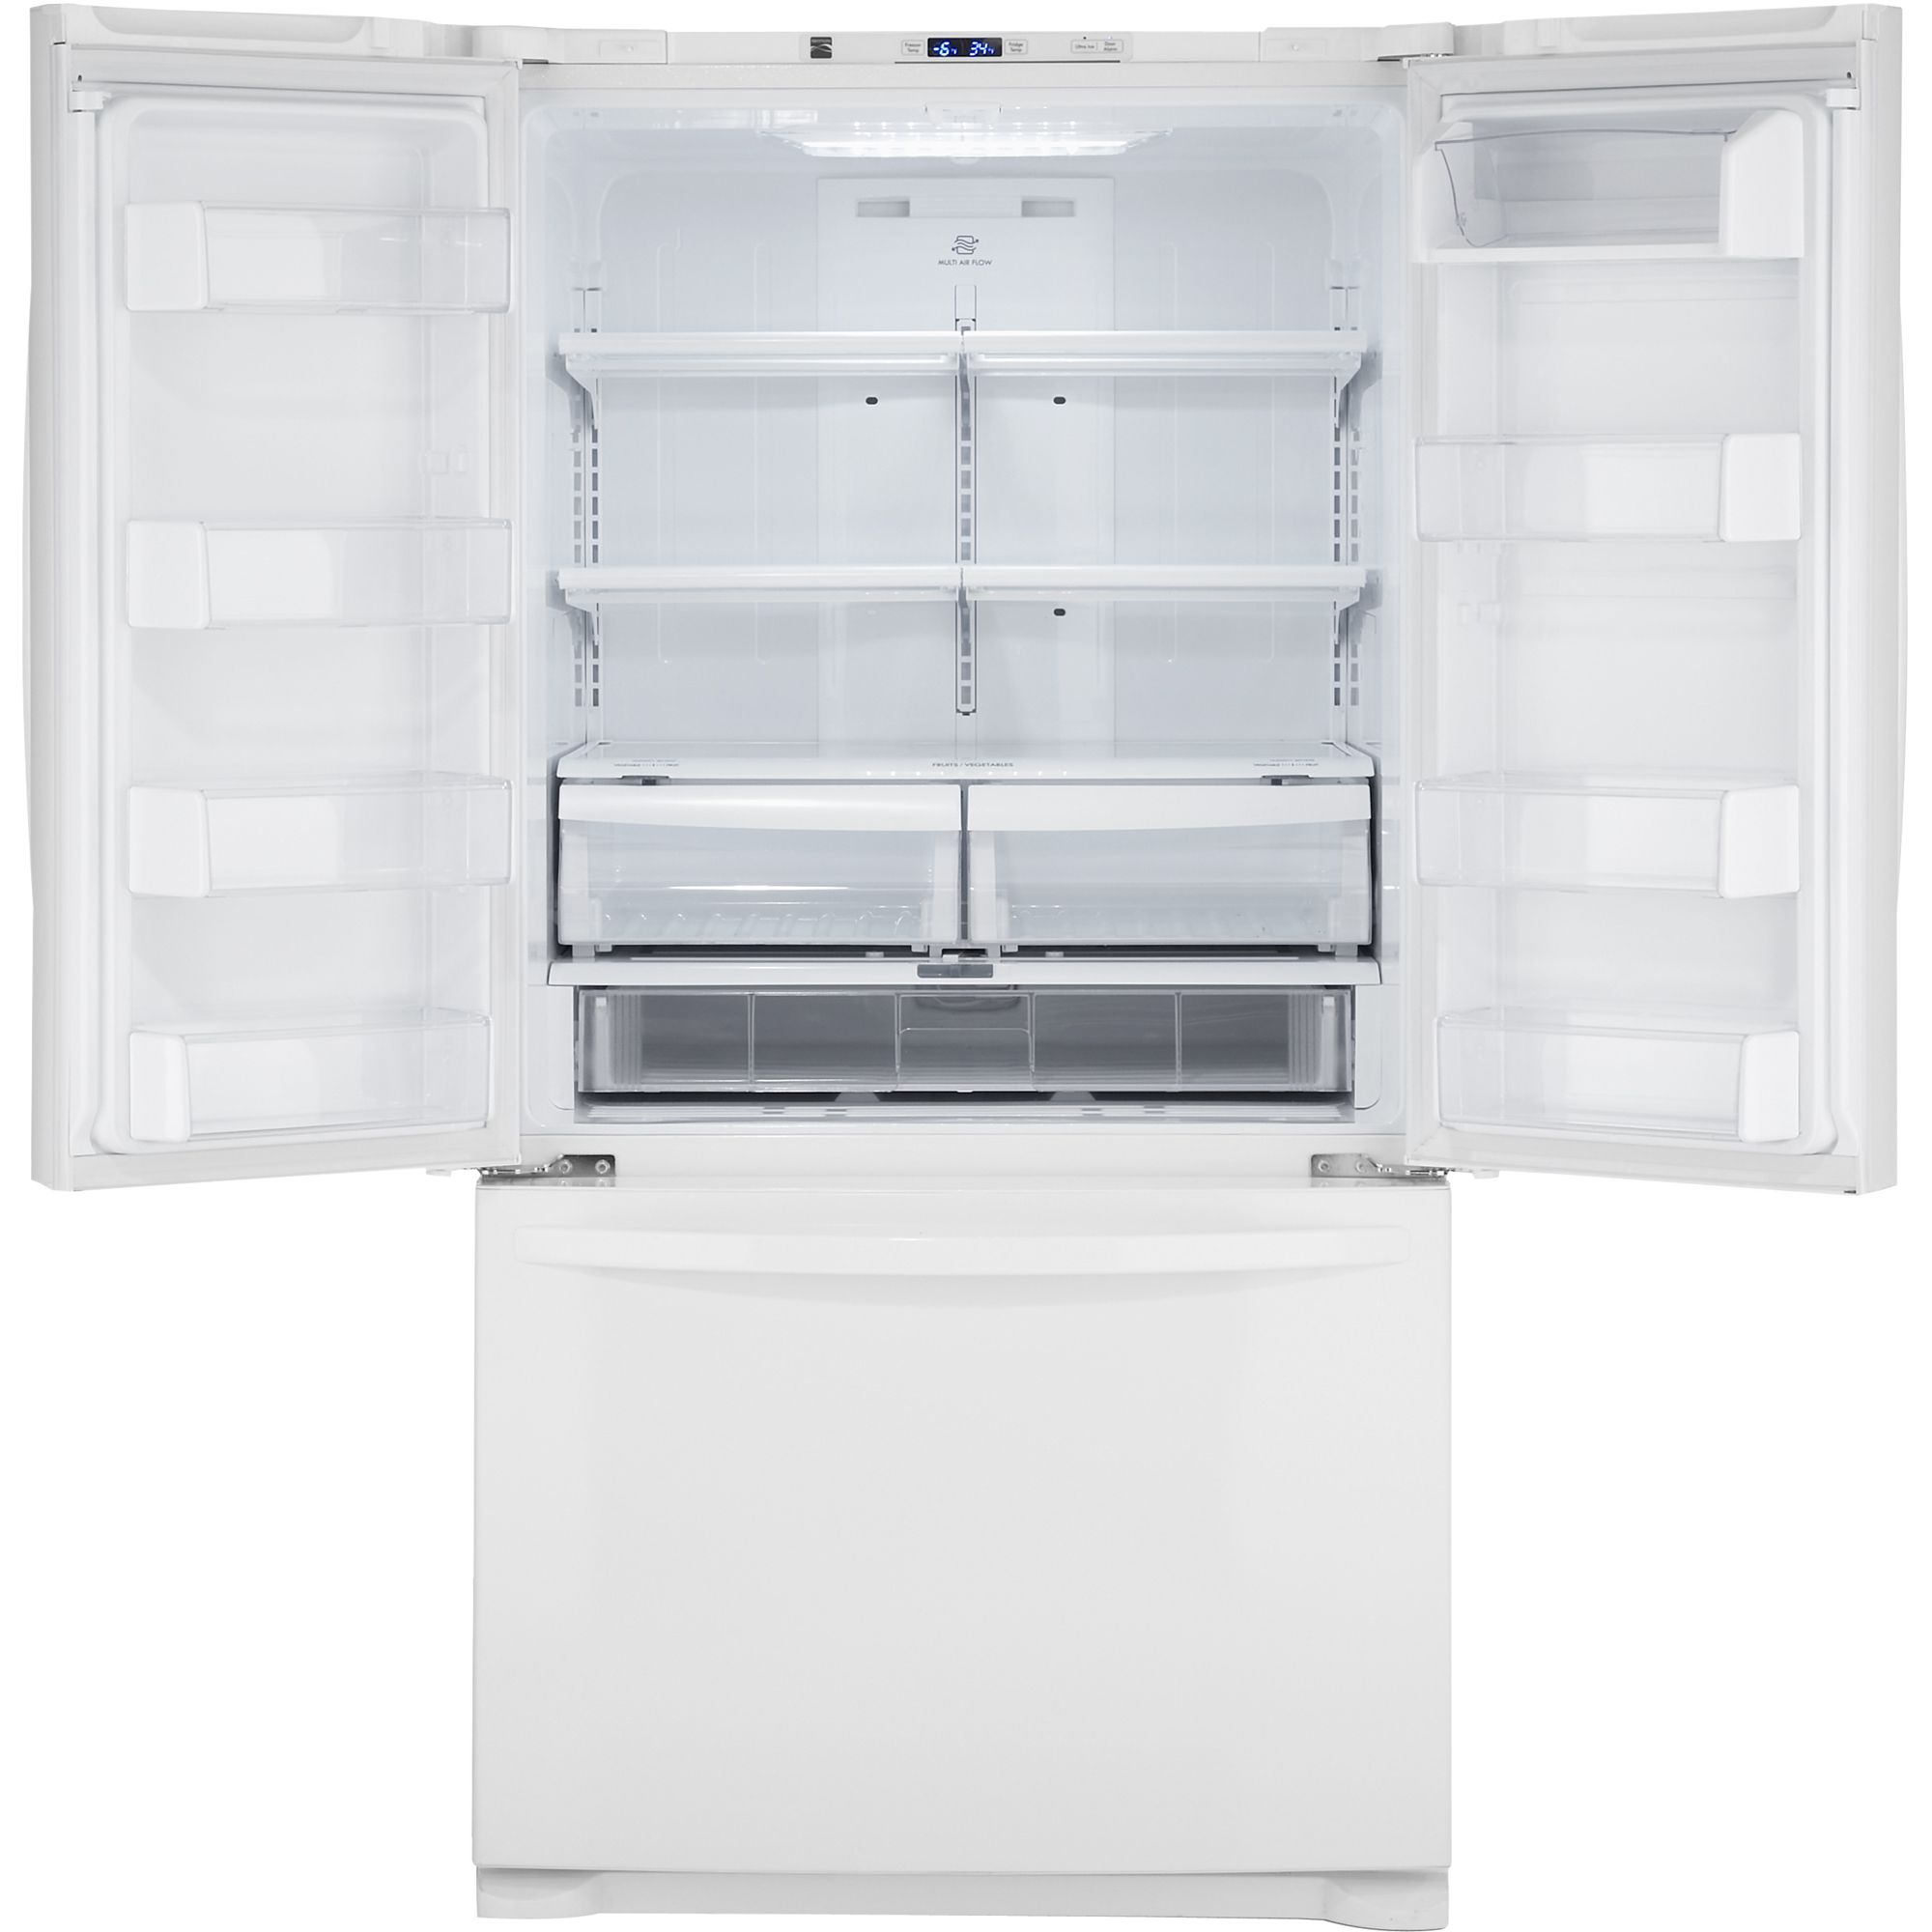 Kenmore 25.4 cu. ft. French Door Bottom-Freezer Refrigerator - White